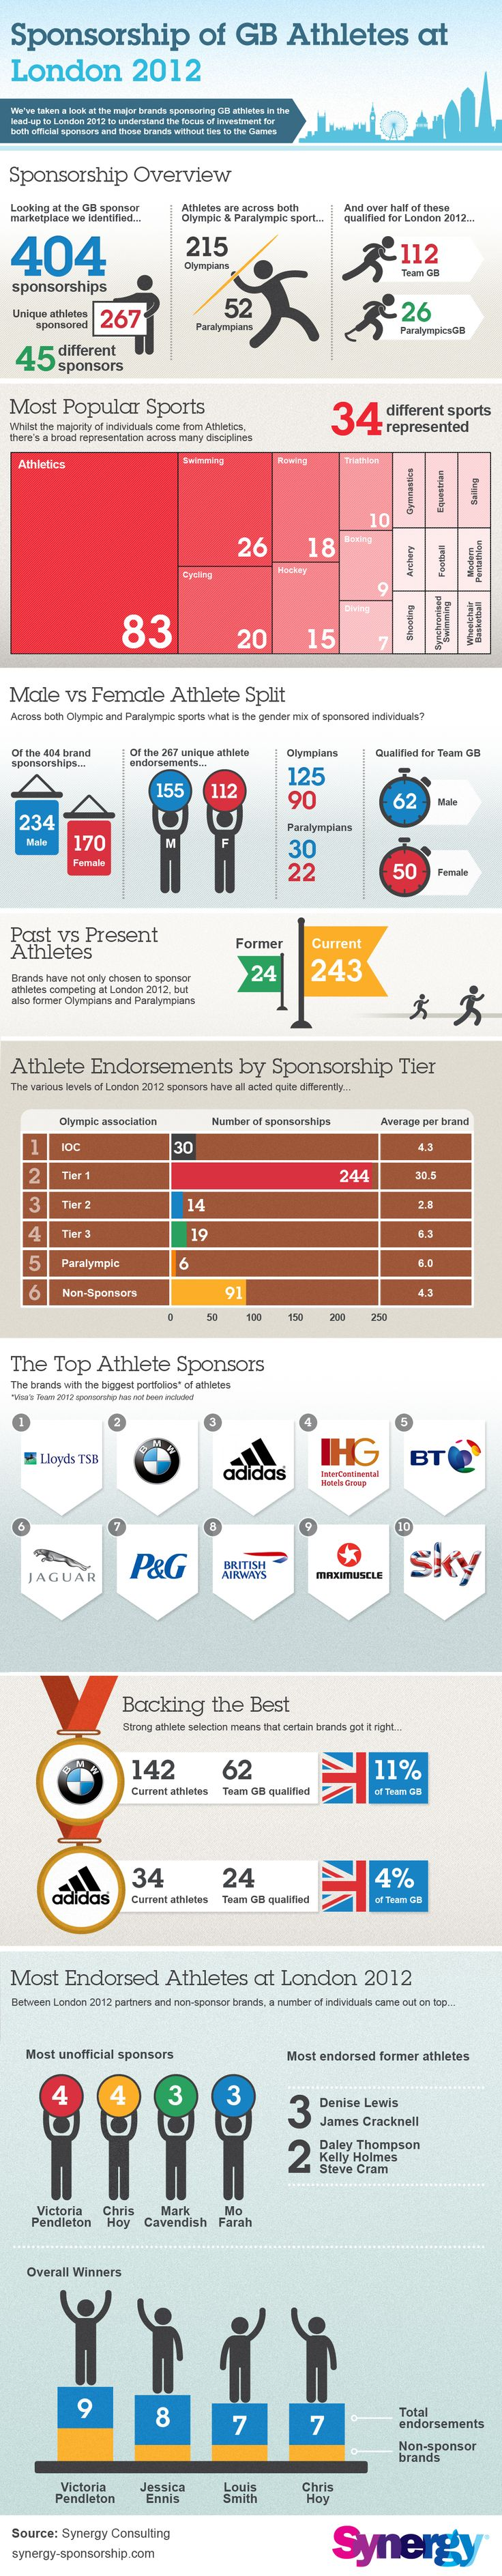 Overview of the brands sponsoring GB athletes at London 2012 - including the most popular individuals and sports.